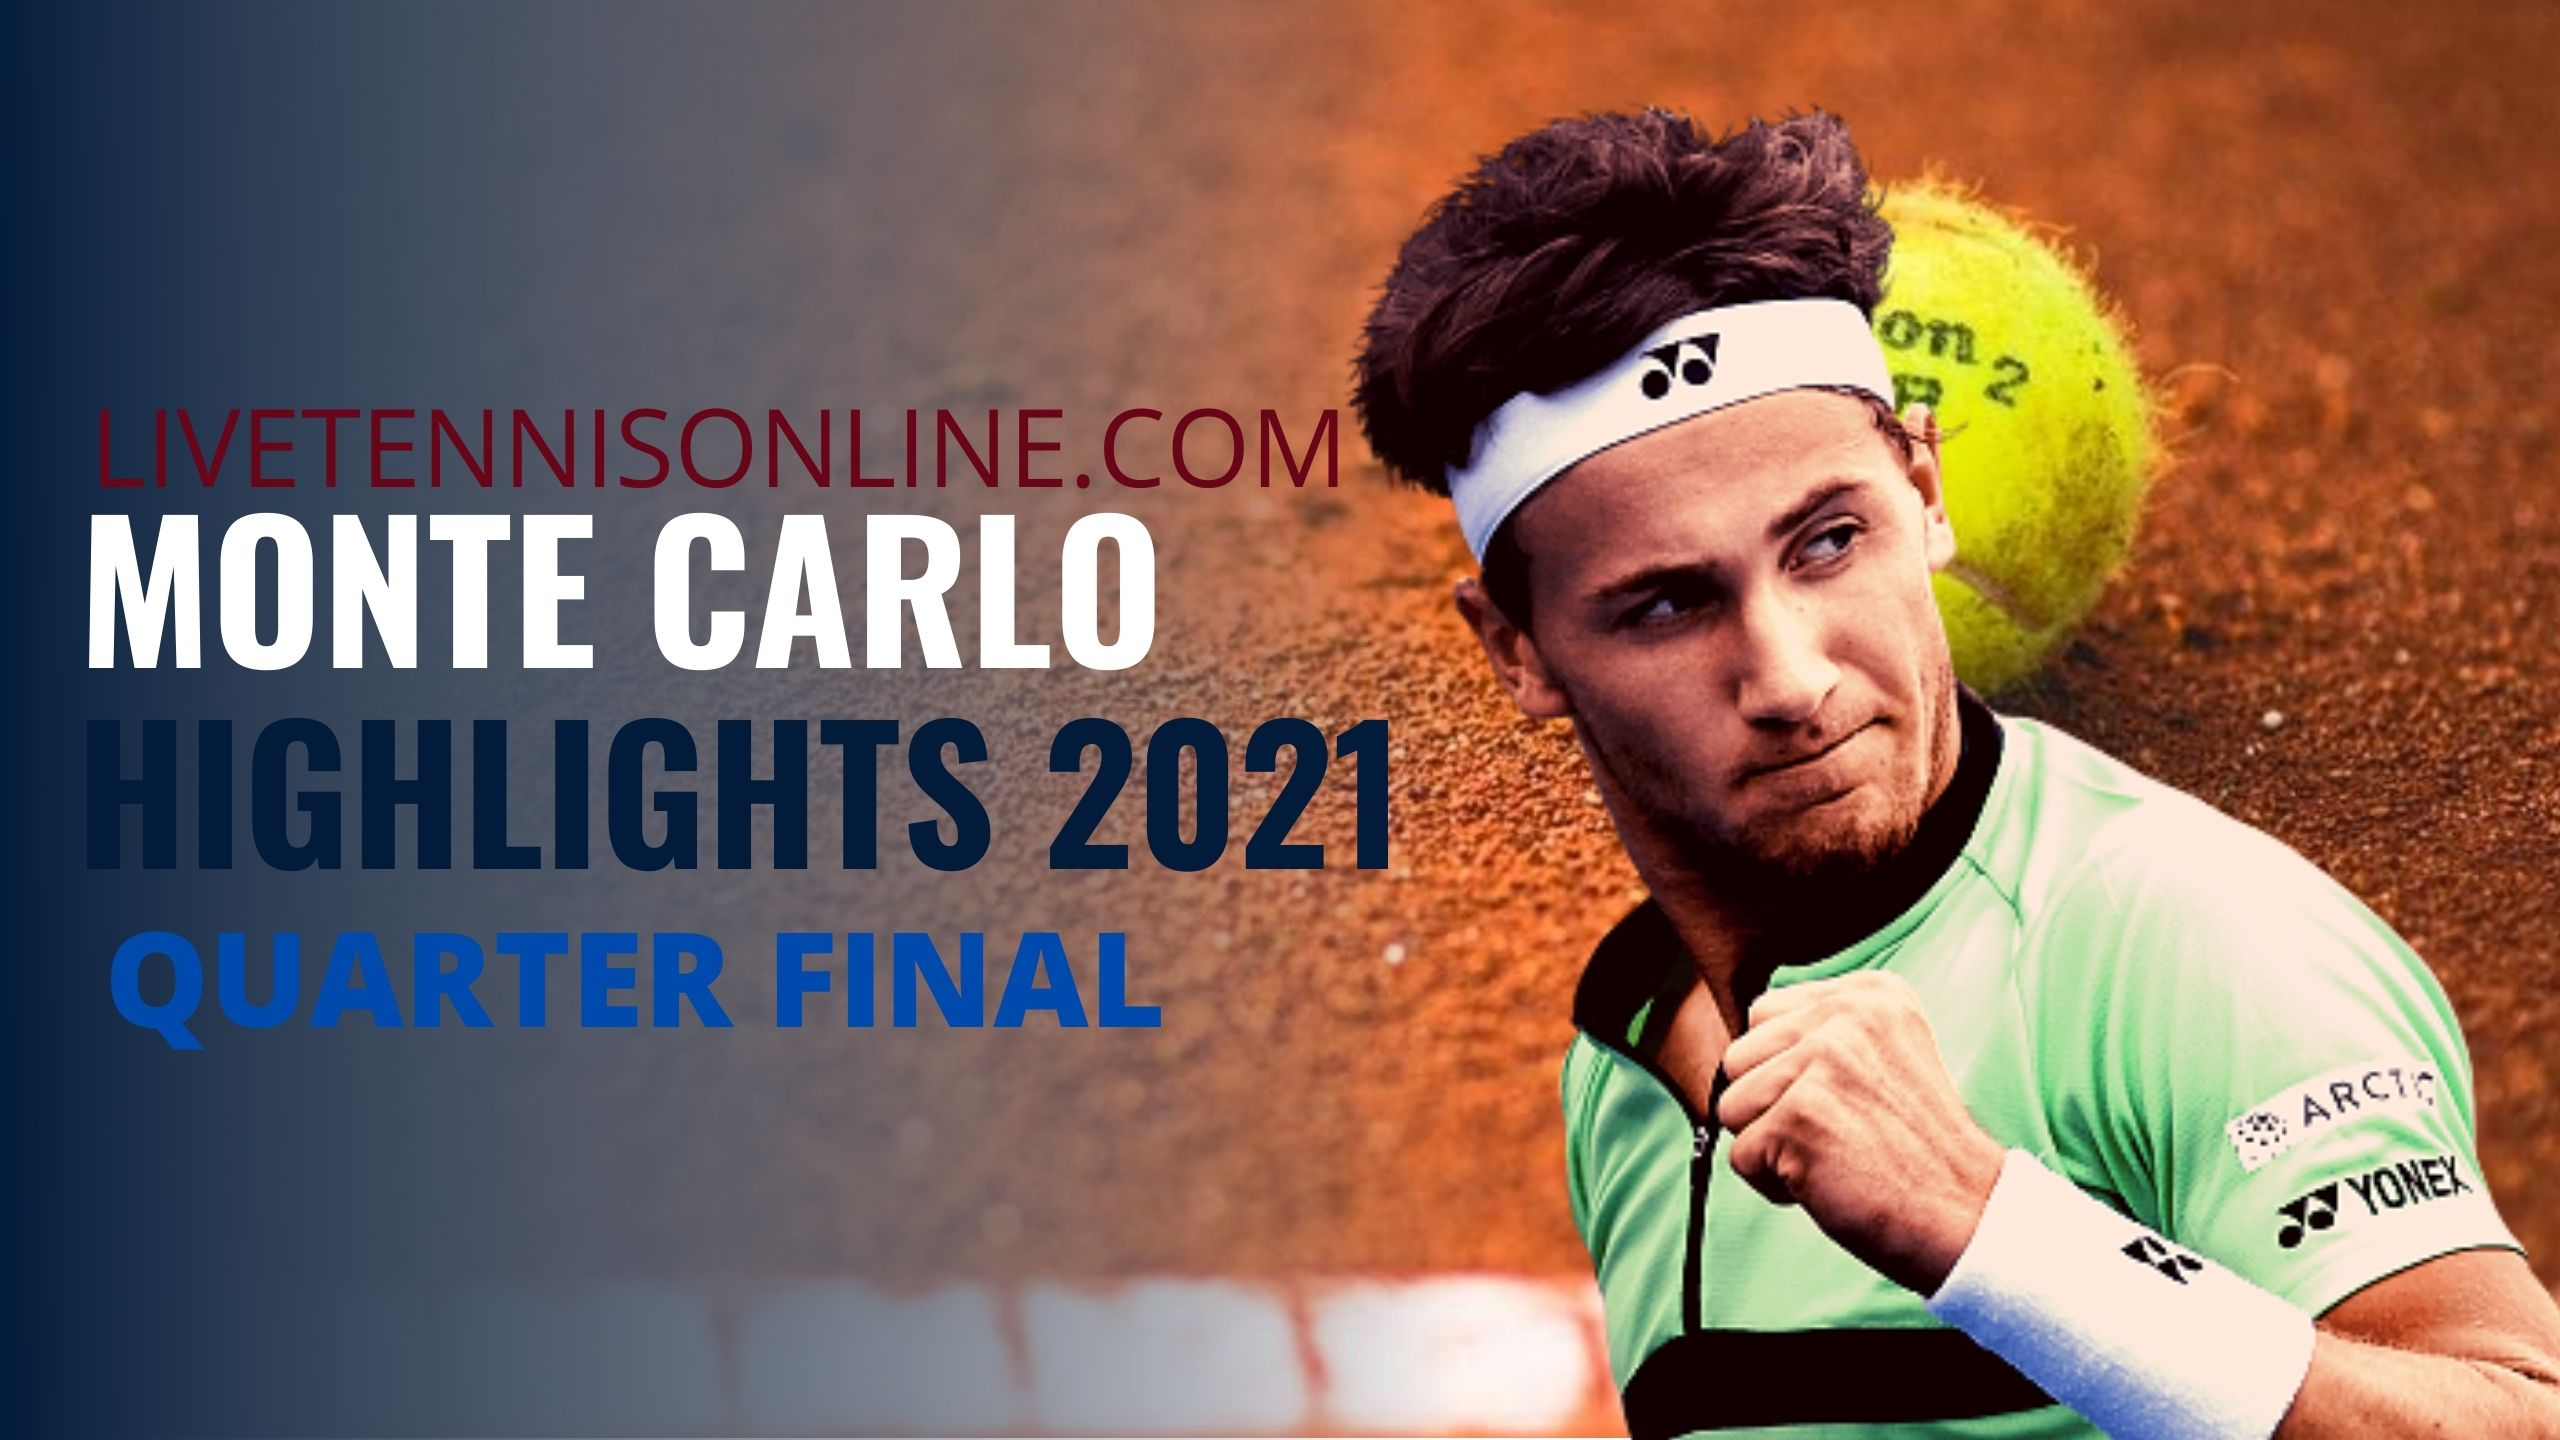 Ruud Vs Fognini Quarter Final Highlights 2021